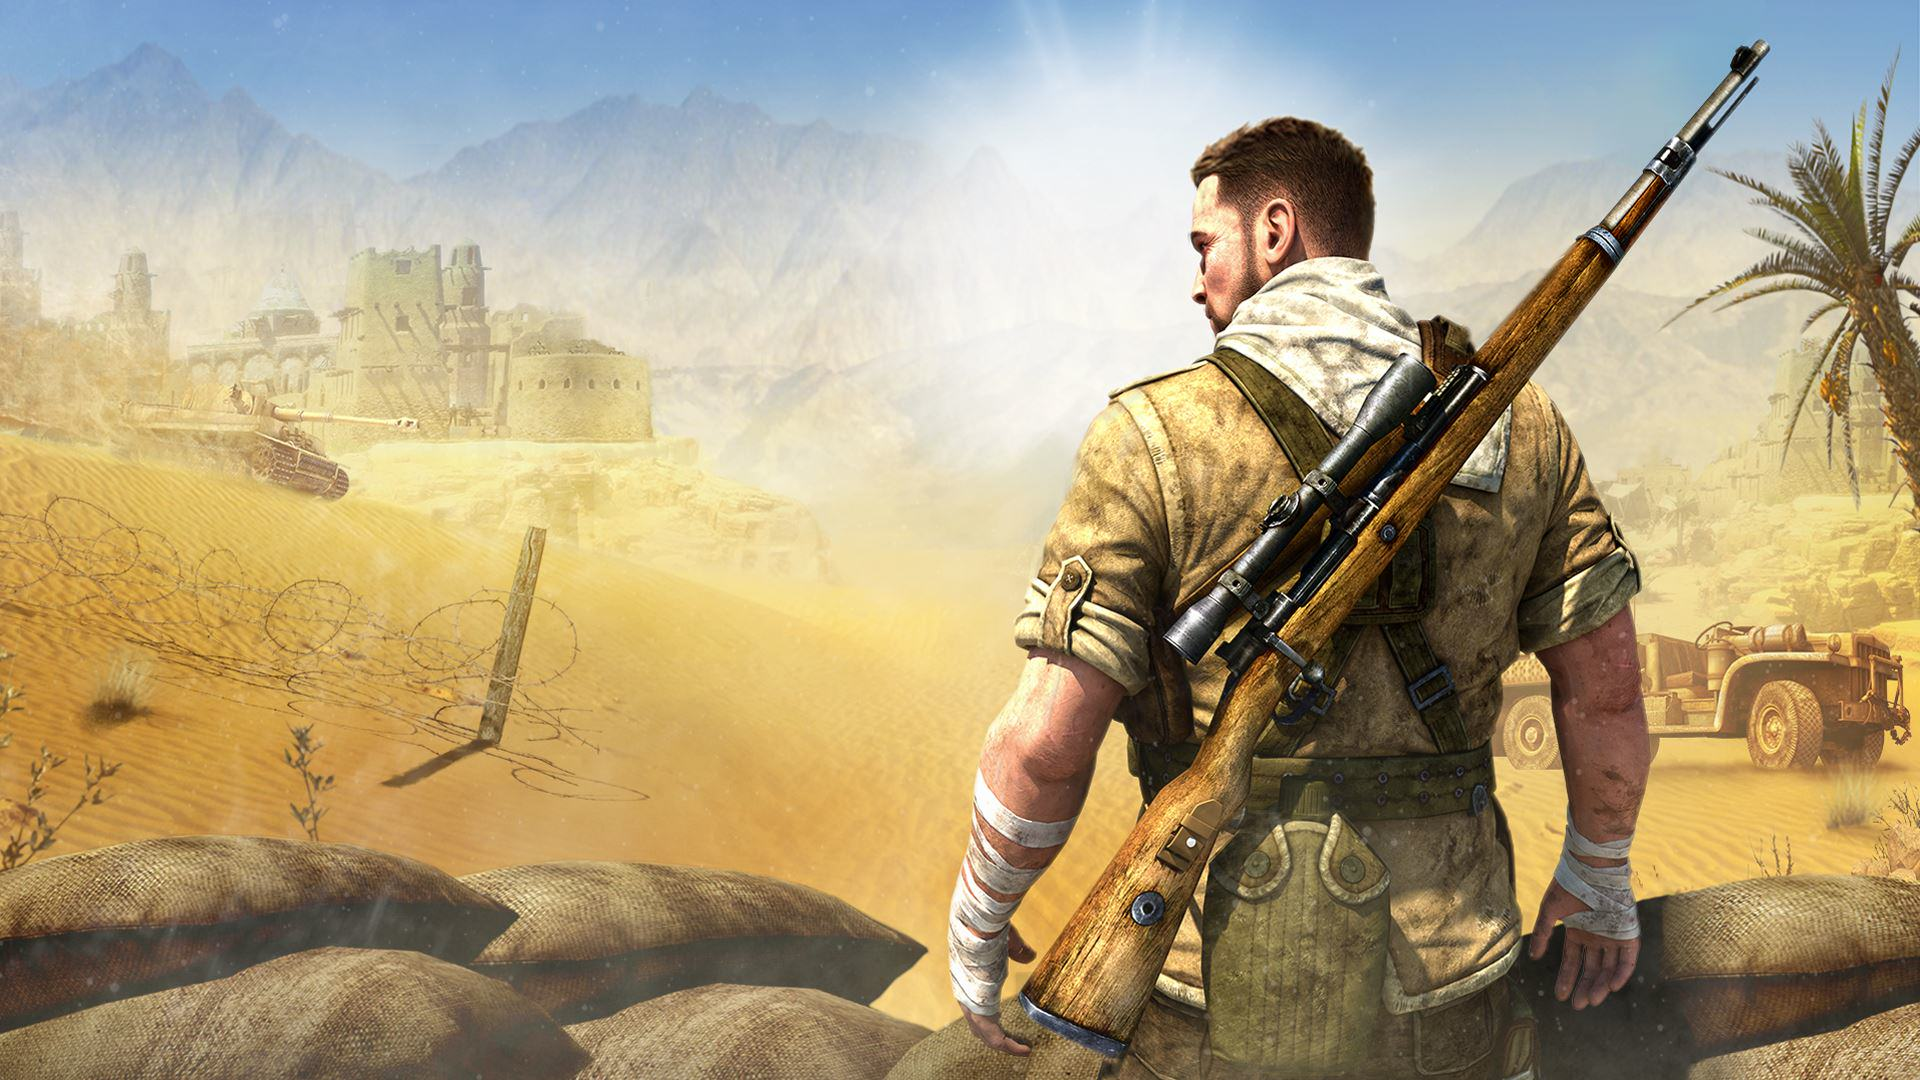 Sniper Elite wallpaper Sniper Elite 4 Officially Announced, Looks Awesome In New Trailer